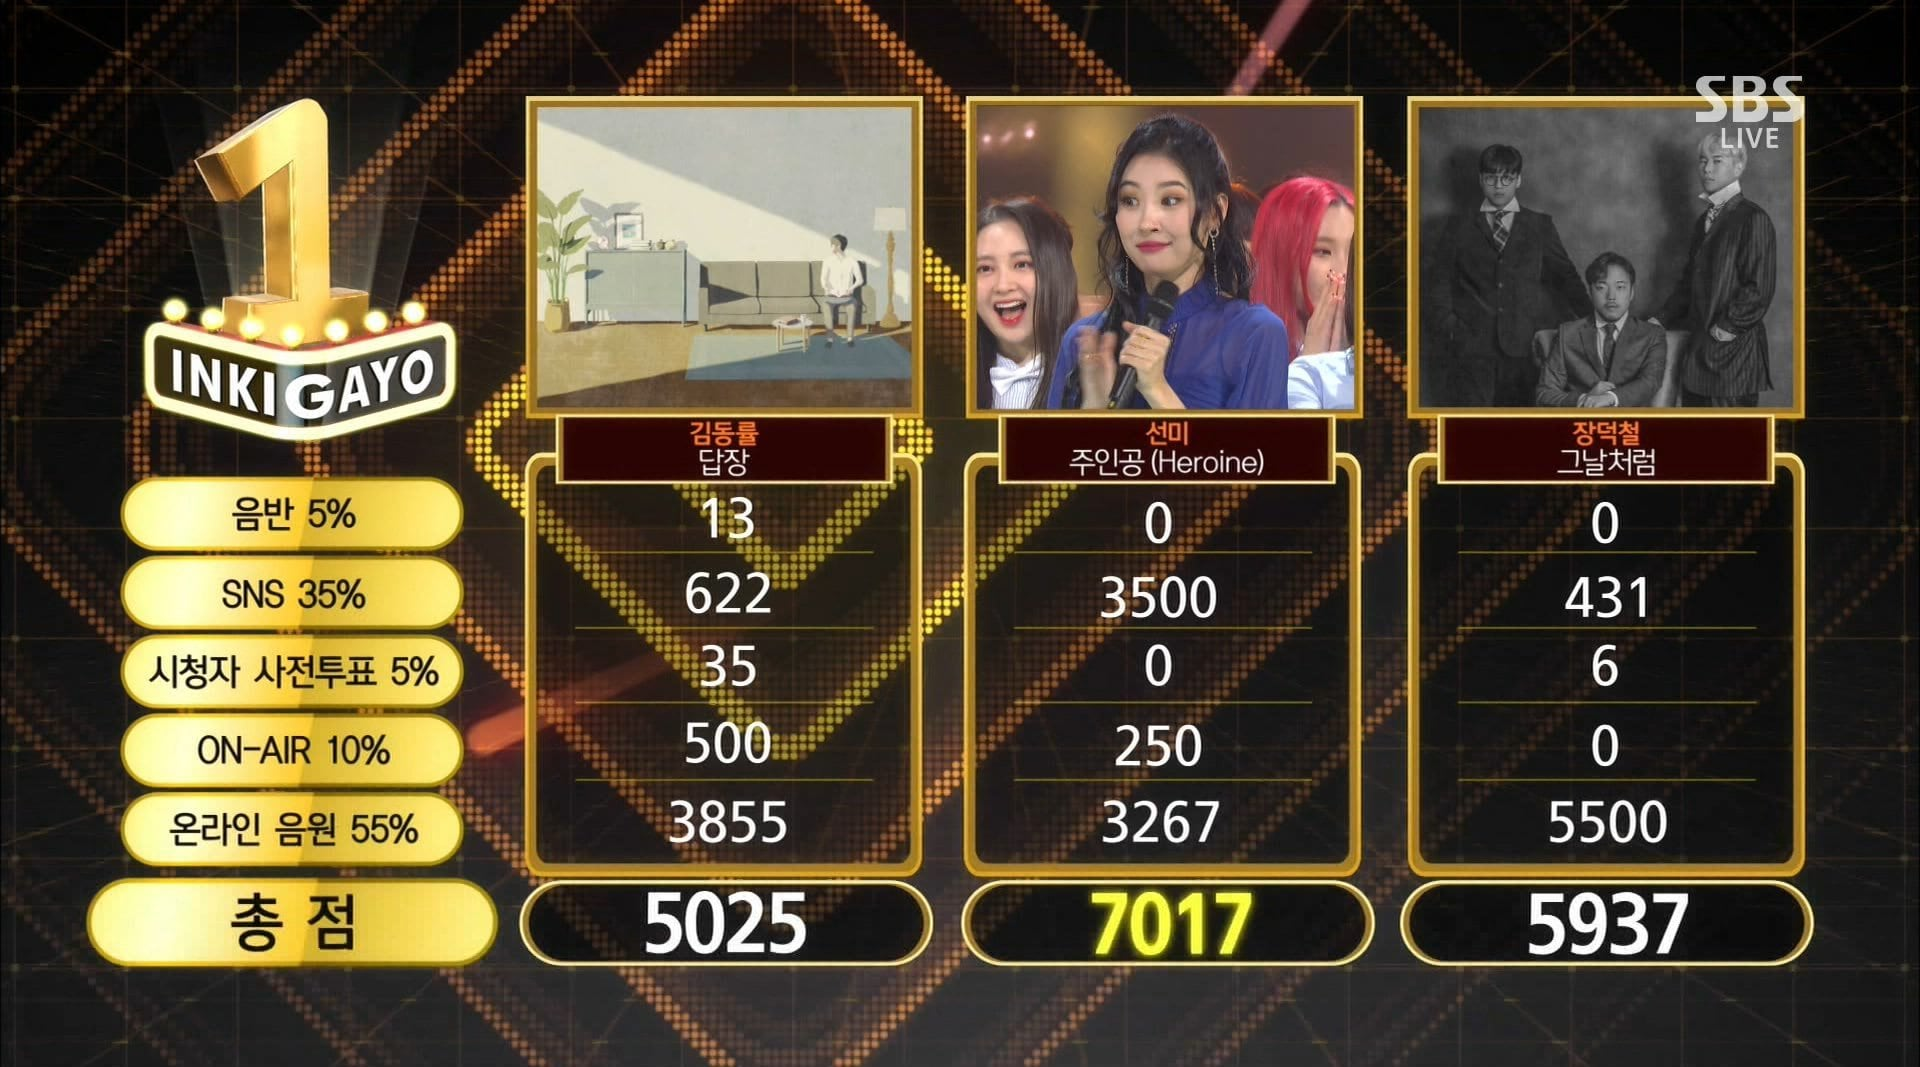 """Watch: Sunmi Takes 3rd Win For """"Heroine"""" On """"Inkigayo""""; Performances By iKON, Jeong Sewoon, And More!"""